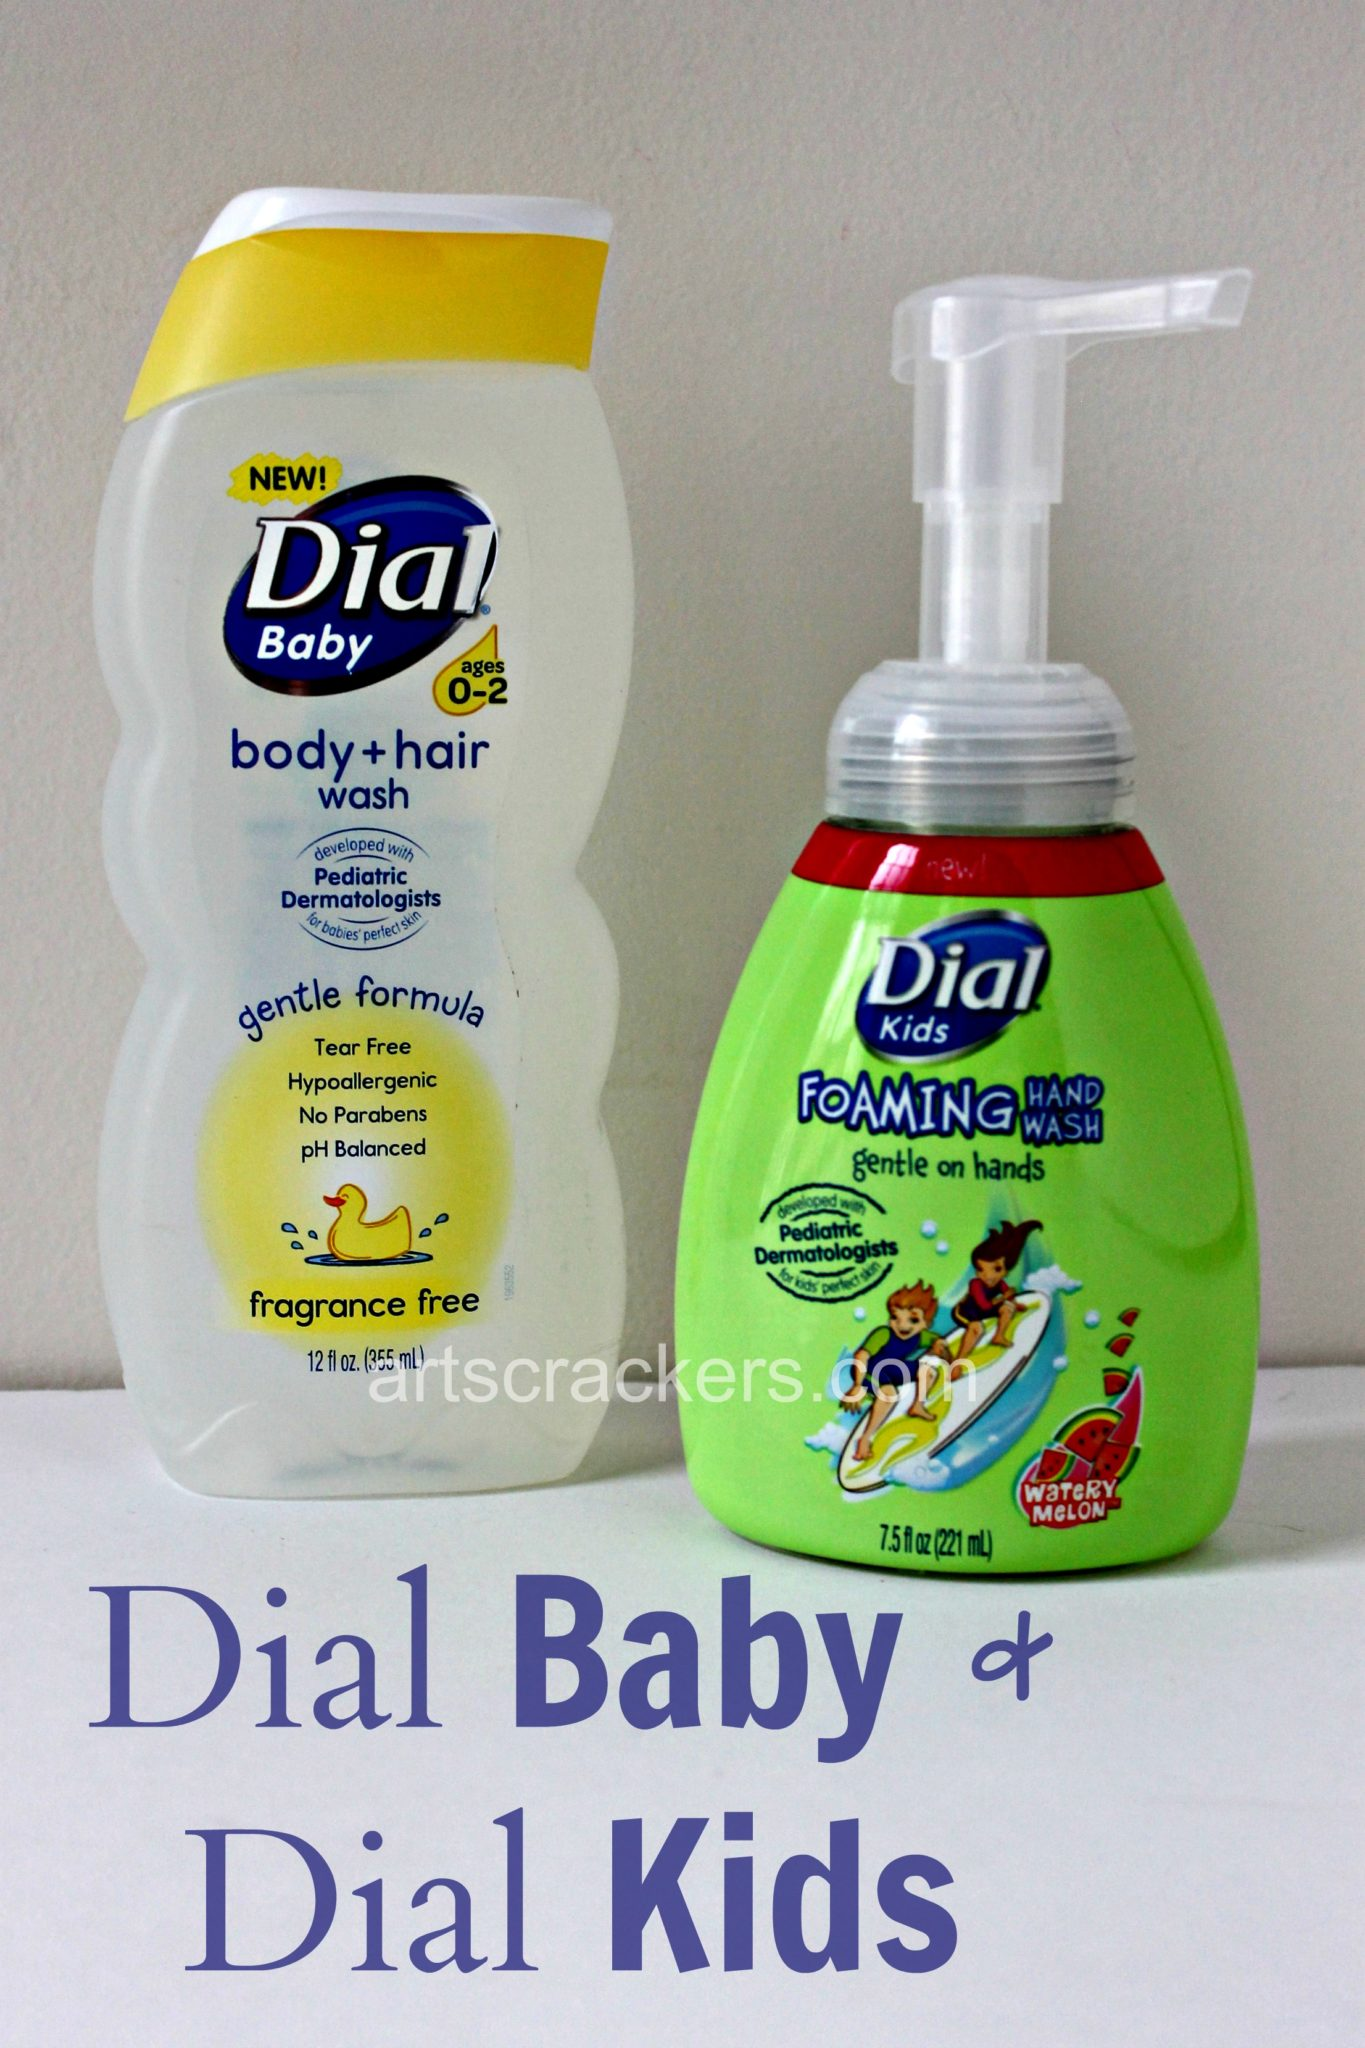 Dial Baby and Dial Kids Personal Care Products. Click the picture for the review and giveaway.